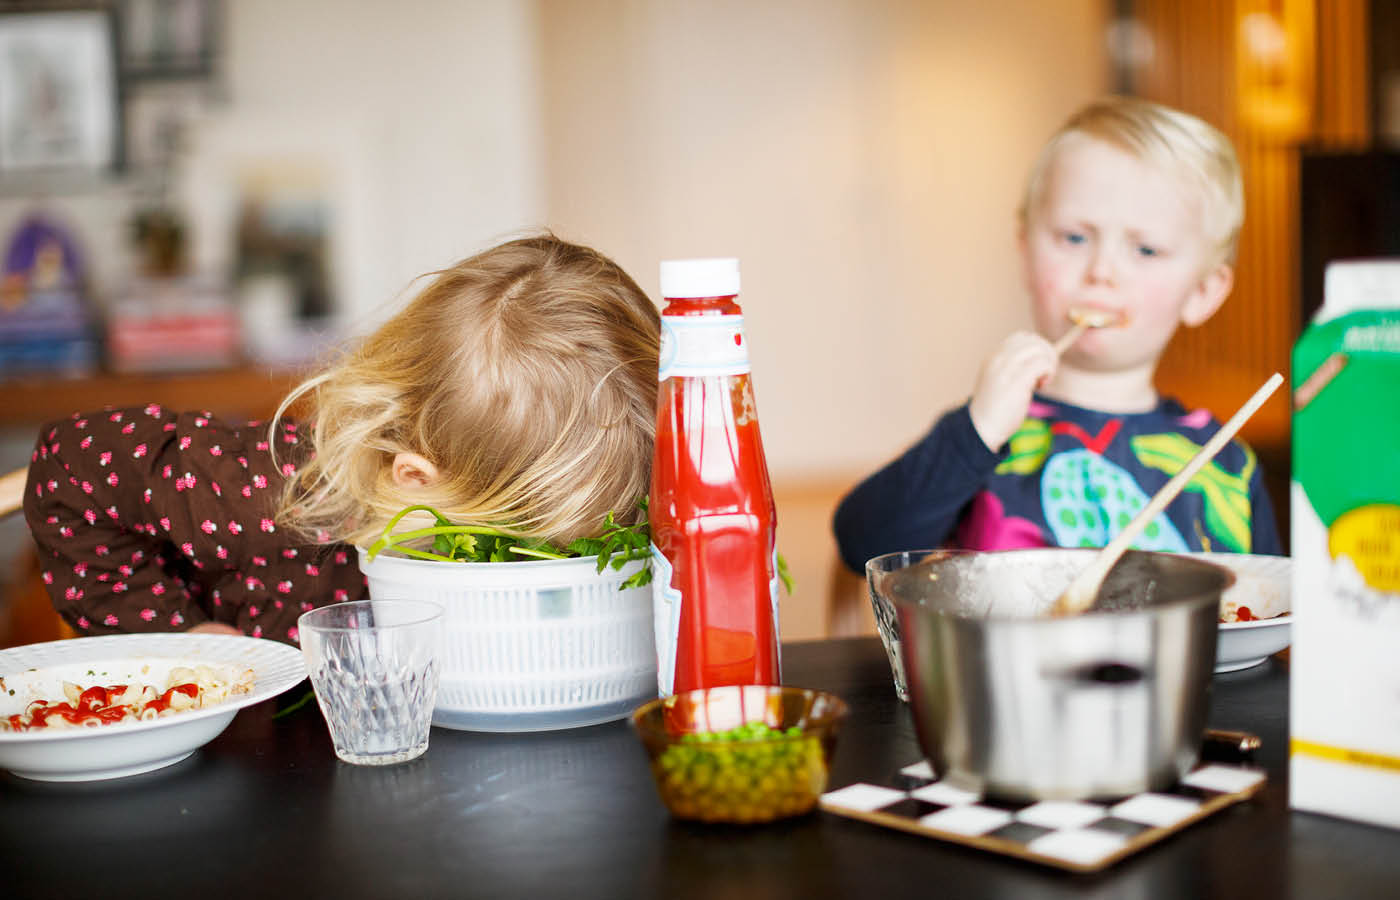 Ima scandinav_3tfz Children at dinner table